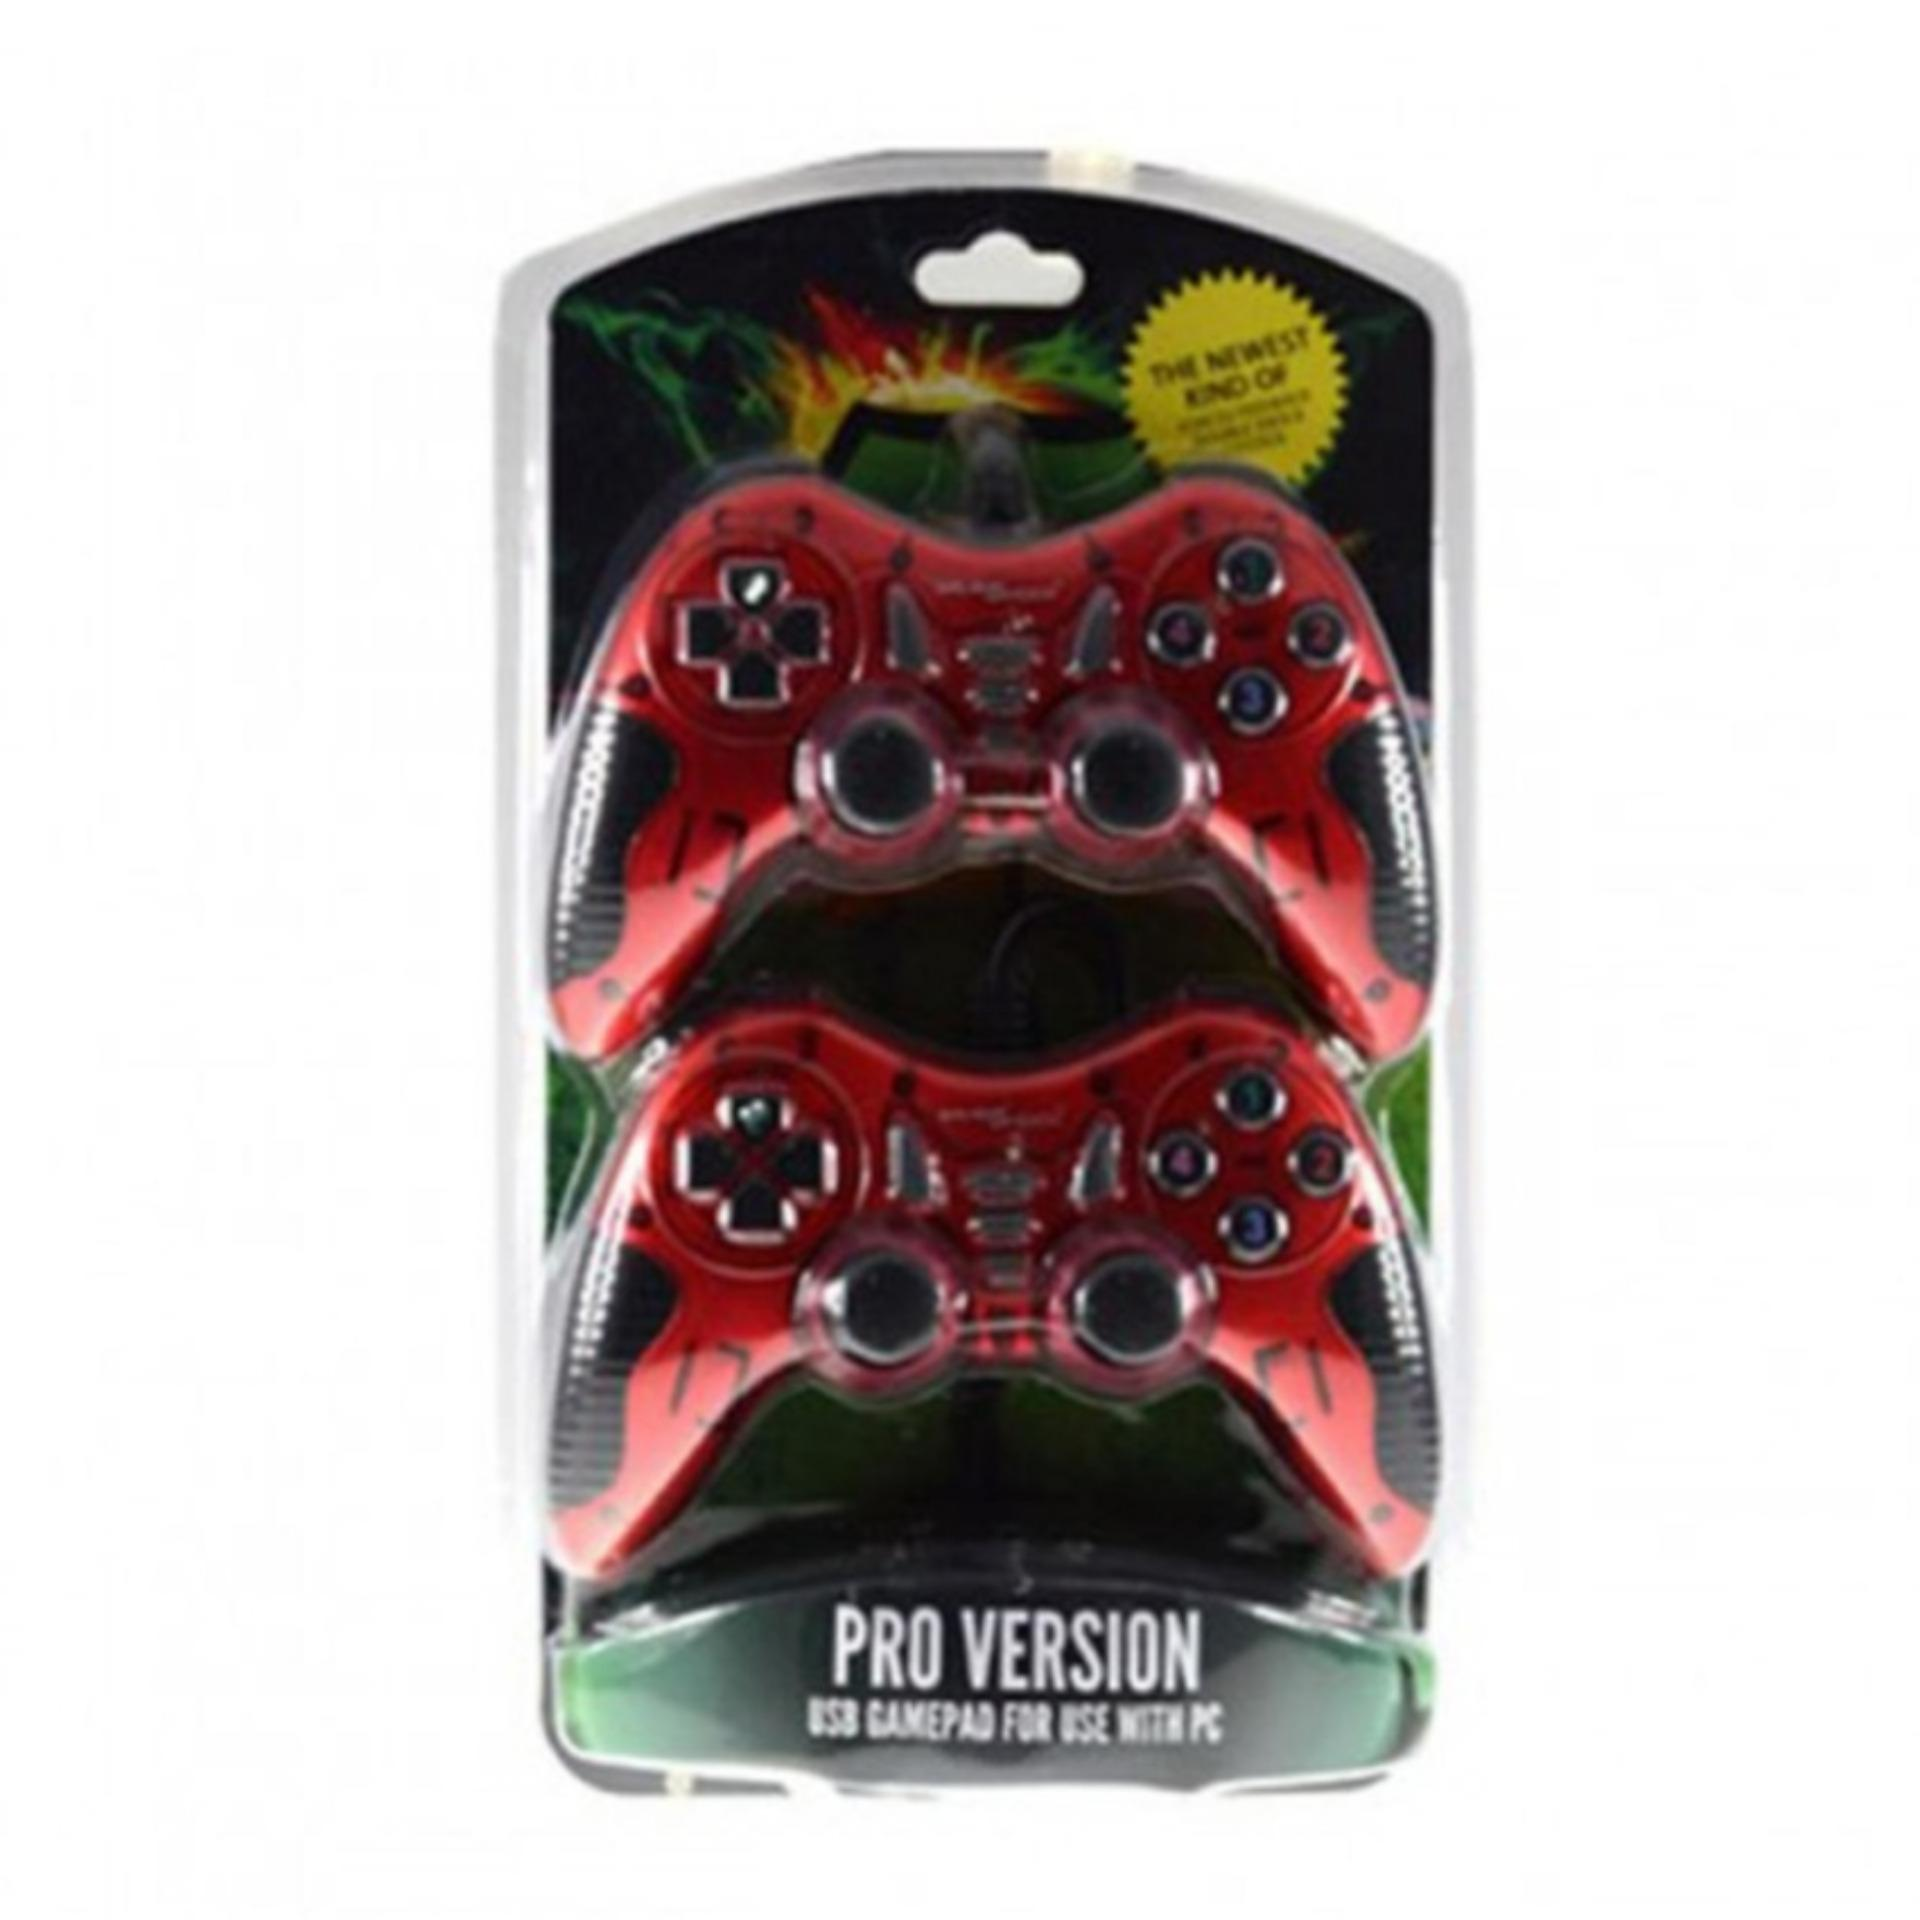 Gameshock Gamepad Double Getar New Turbo BF-713D-RE .